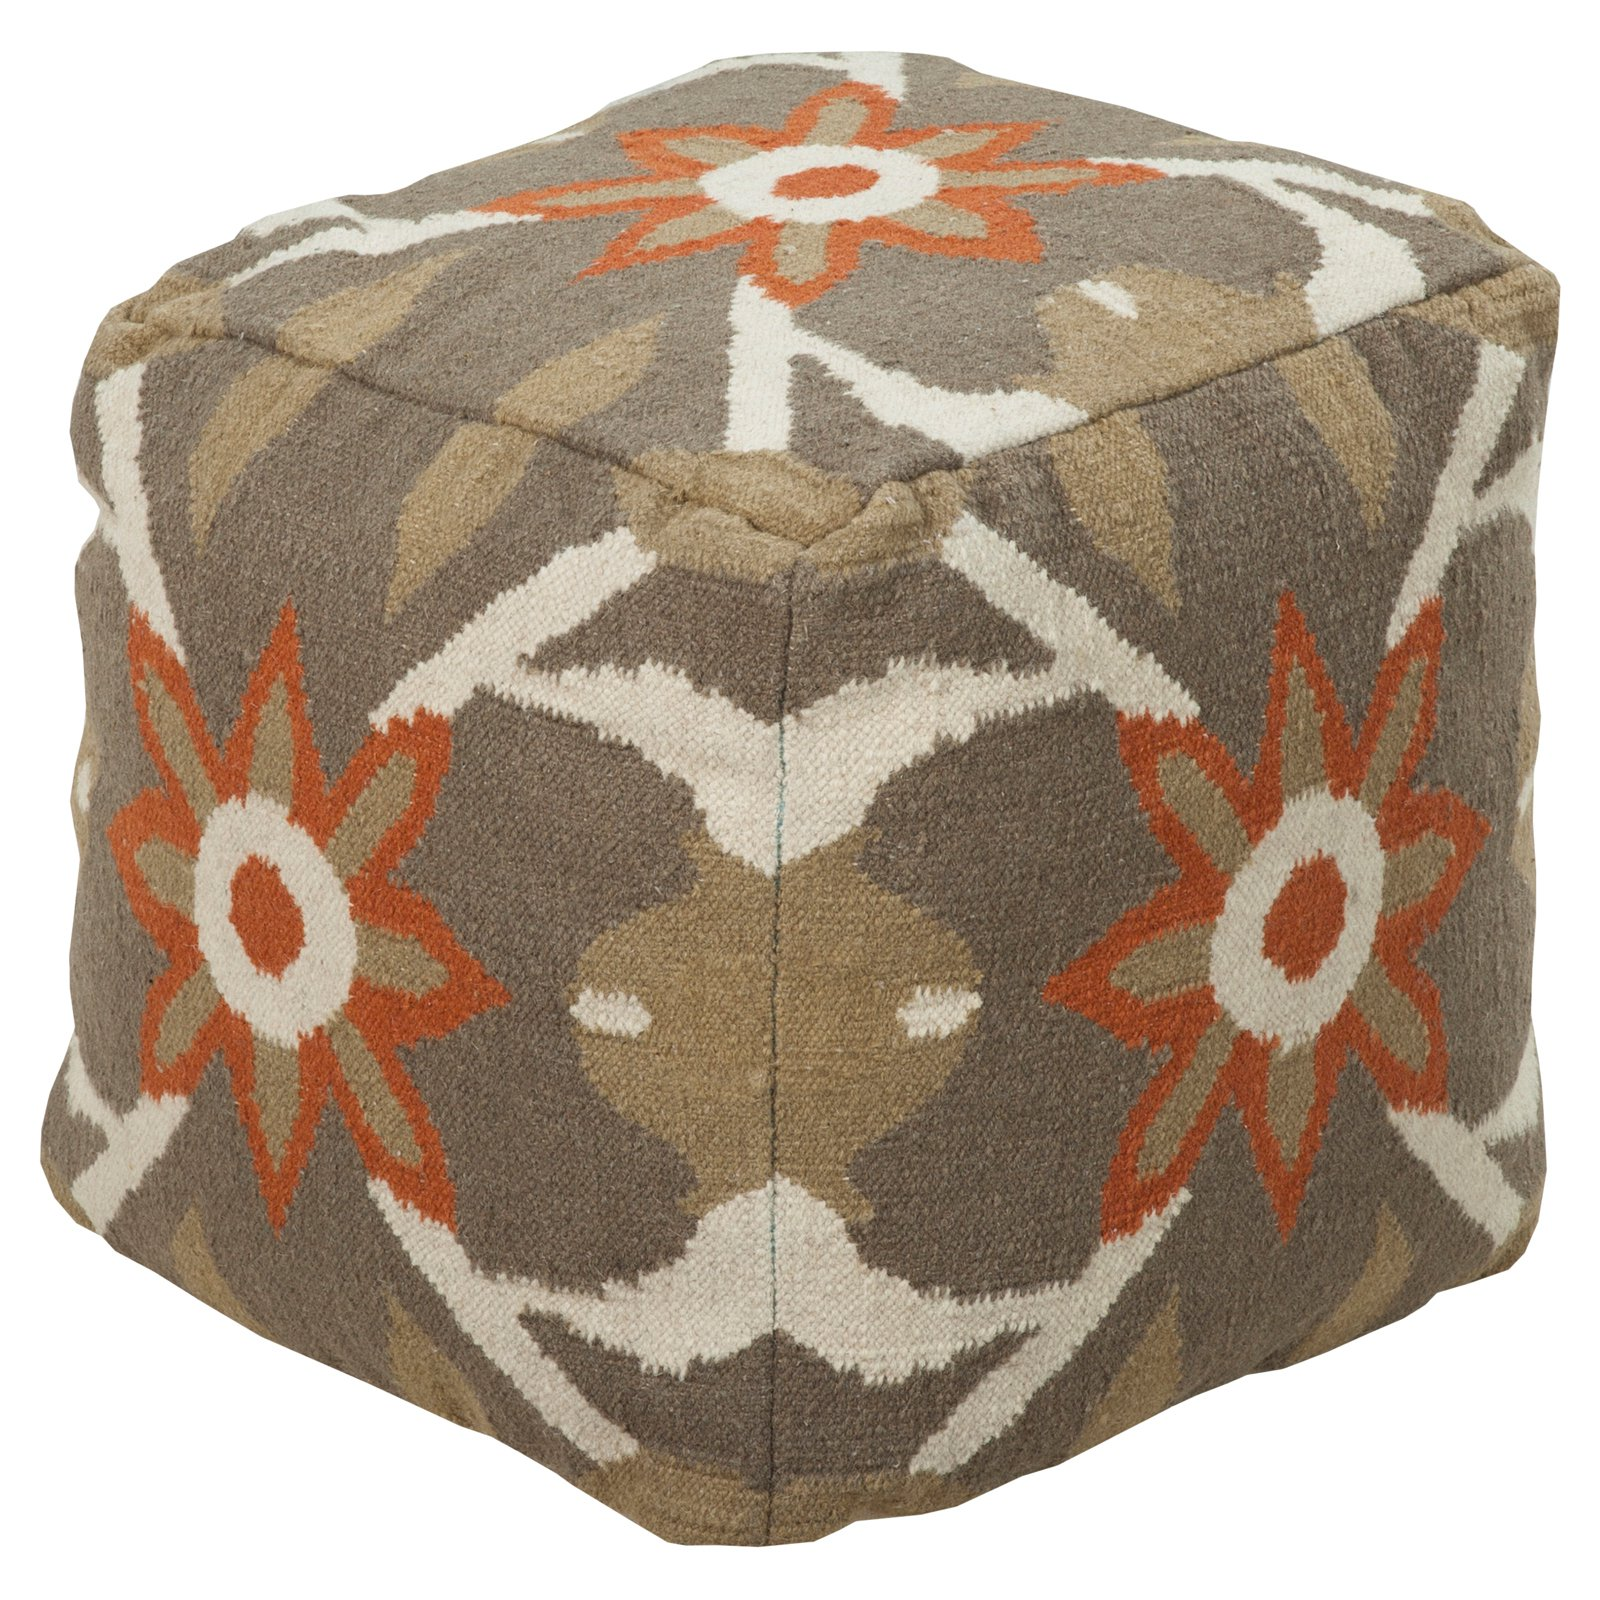 Surya 18 in. Cube Wool Pouf Mossy Gold by Surya